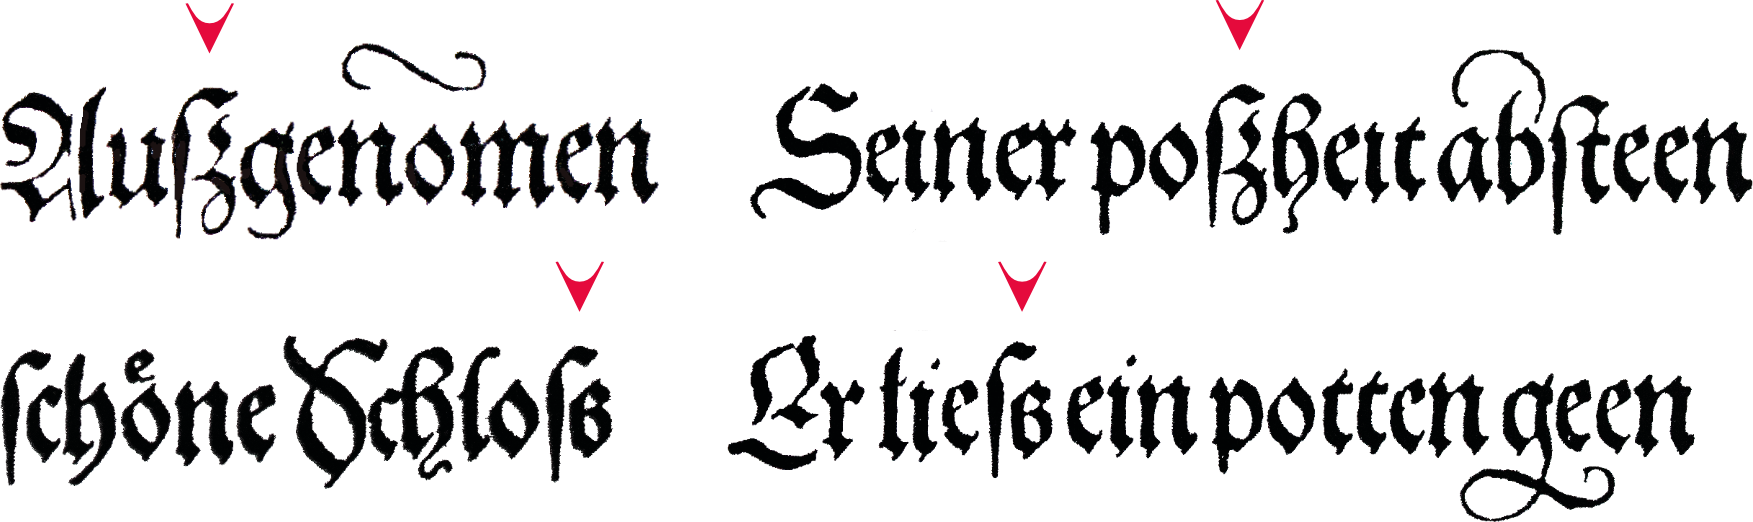 Examples of different versions of the sharp S from Theuerdank